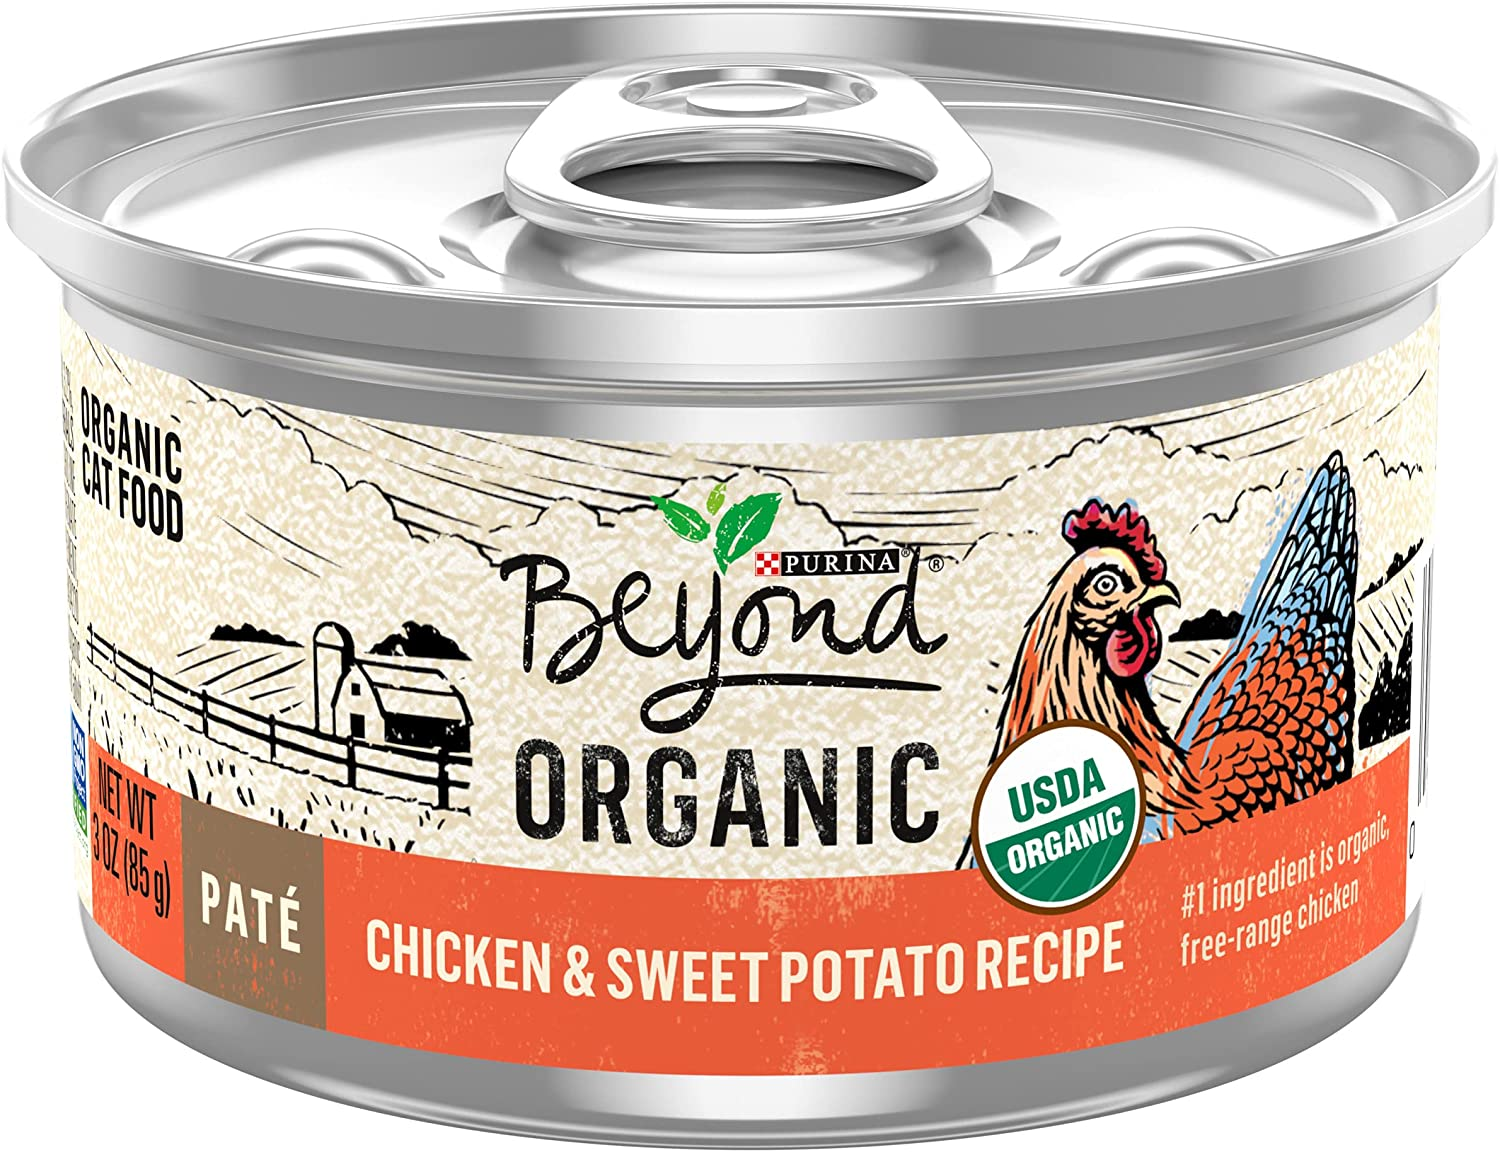 New! Purina Beyond Organic High Protein Wet Cat Food